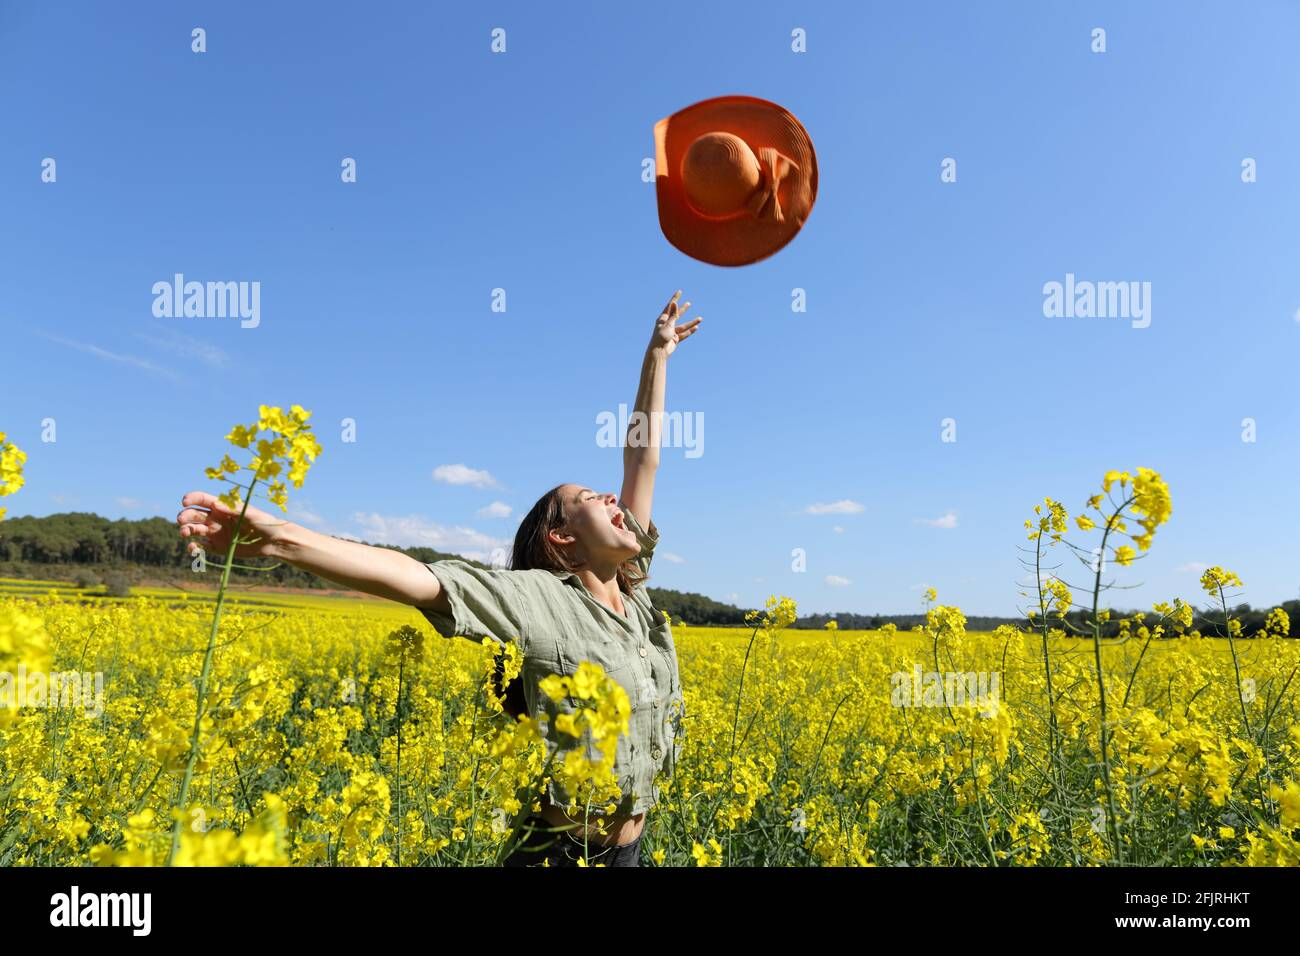 Happy woman throwing pamela celebrating vacation in a yellow flowered field in spring Stock Photo